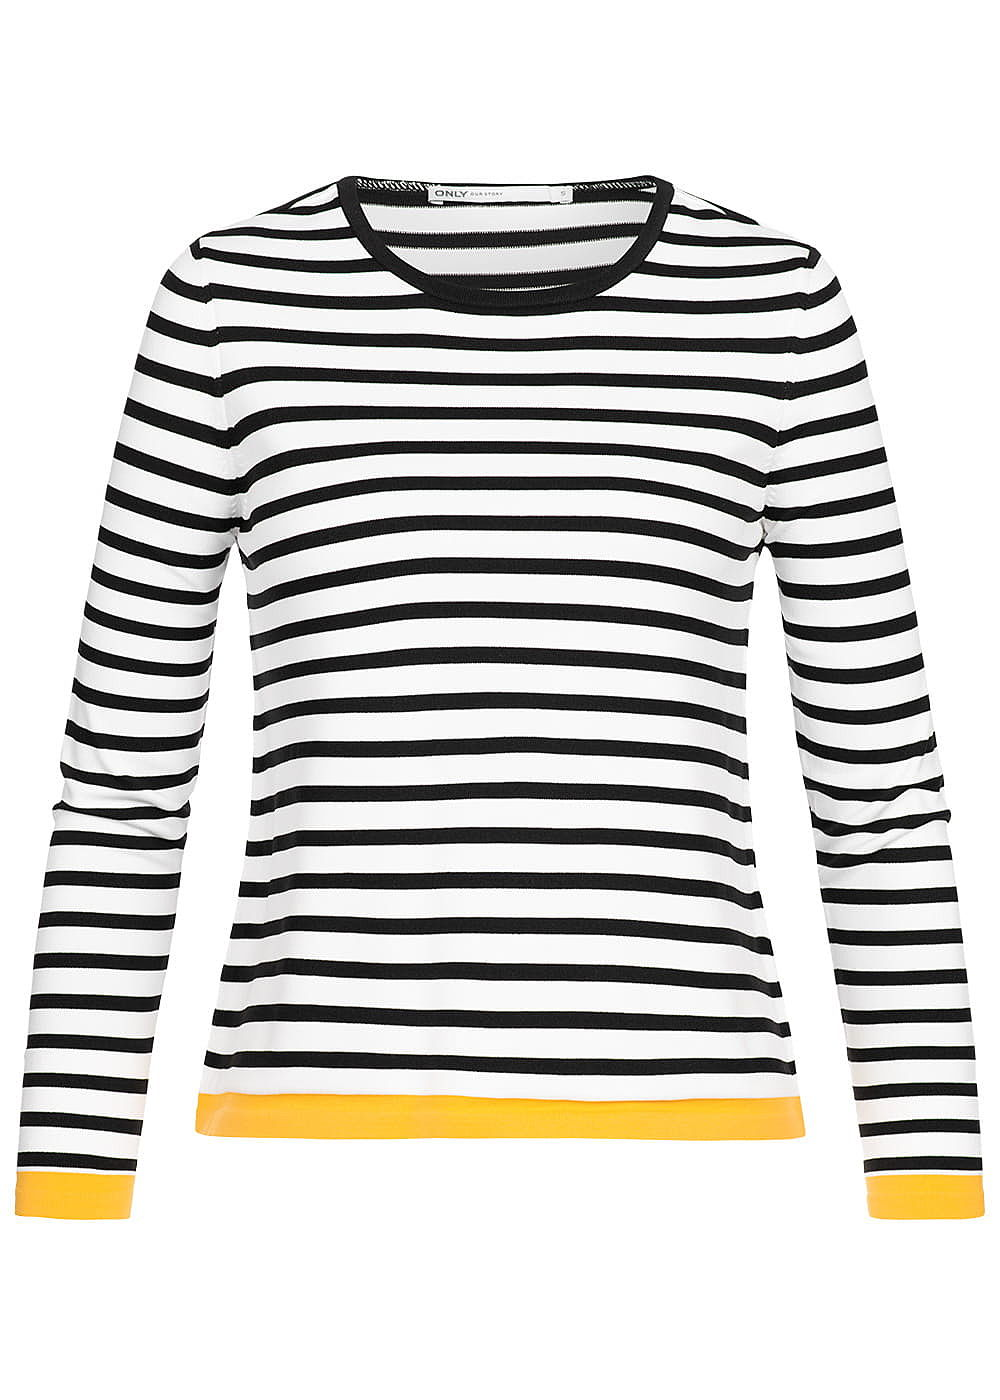 ONLY Damen Striped Pullover NOOS cloud dancer weiss schwarz - Art.-Nr.: 19031177